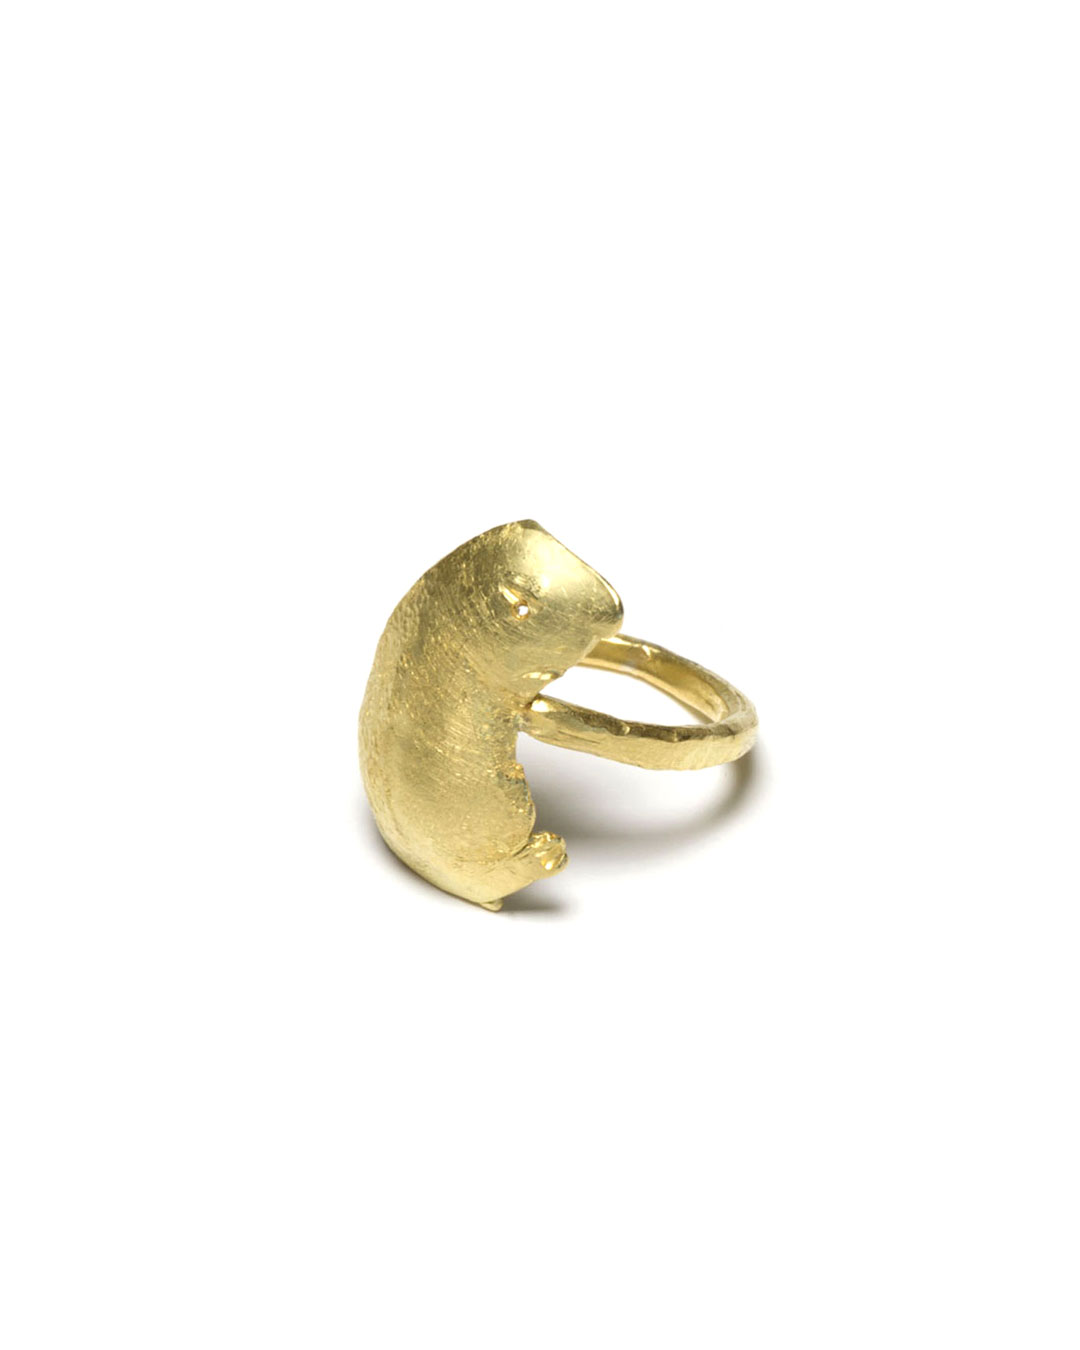 Juliane Brandes, untitled, 2016, ring; 18ct gold, 20 x 24 x 23 mm, €1700